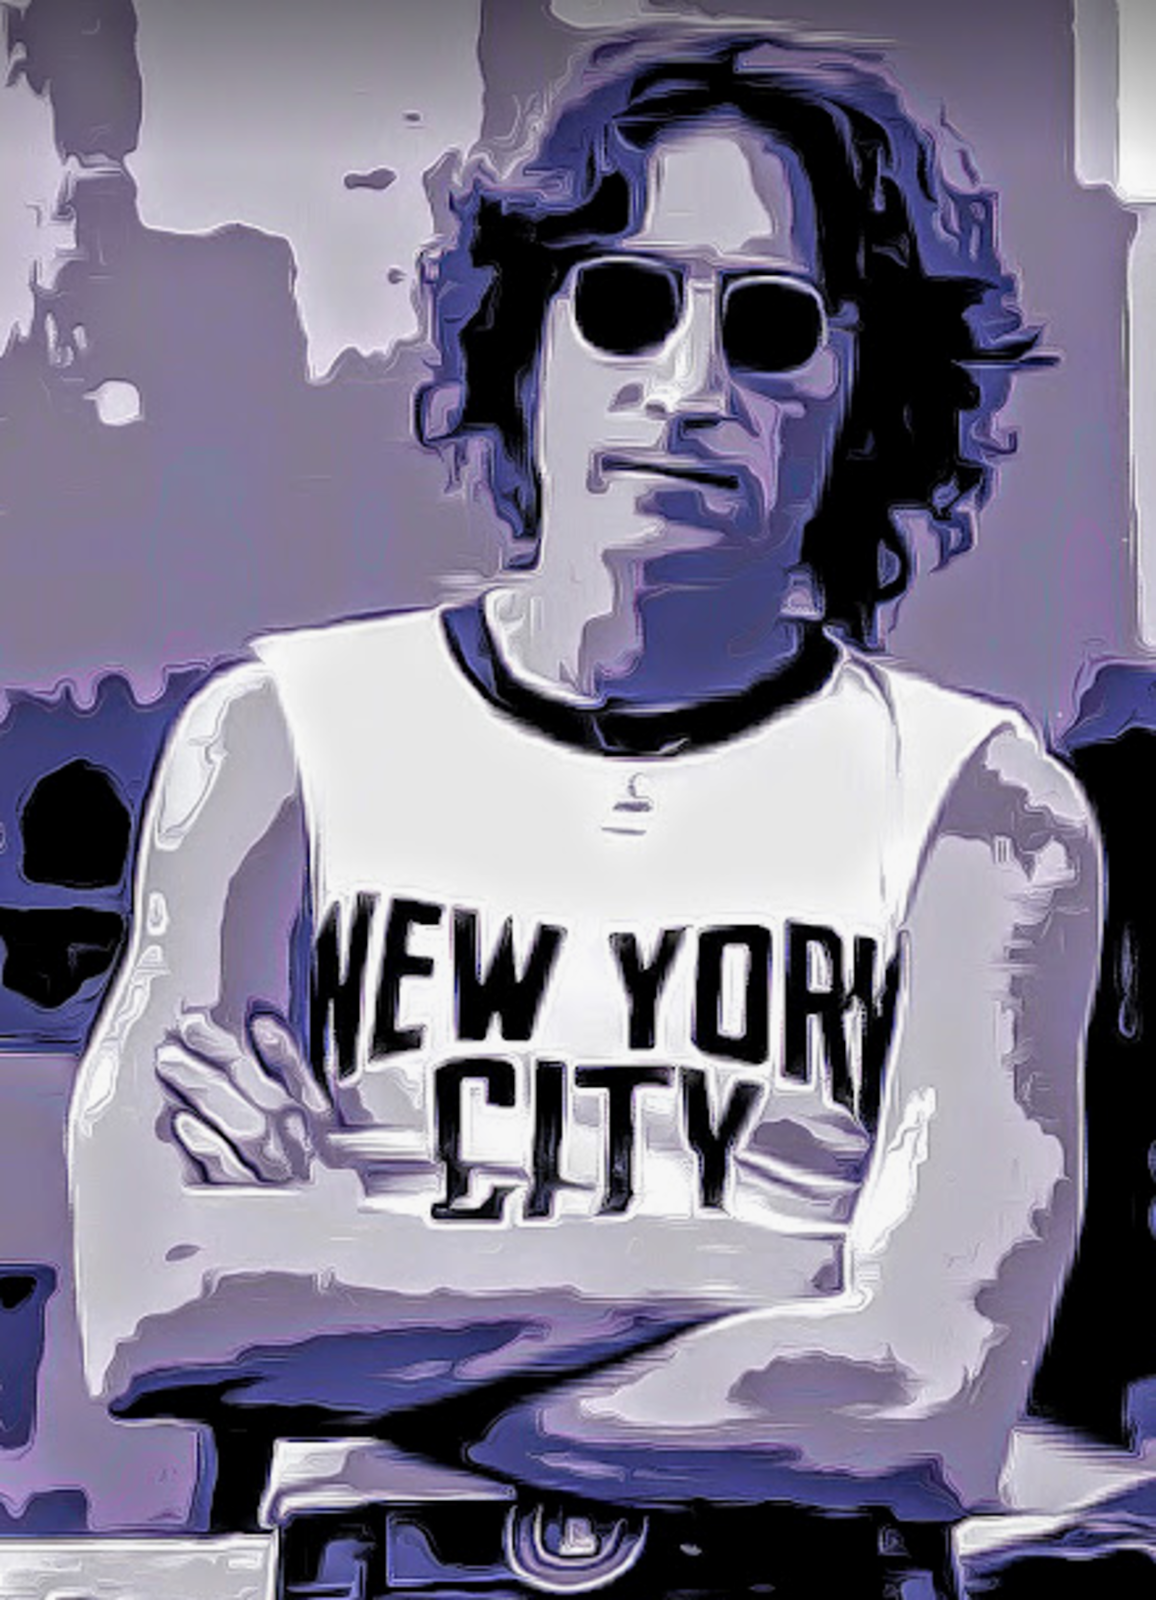 John Lennon - New York City